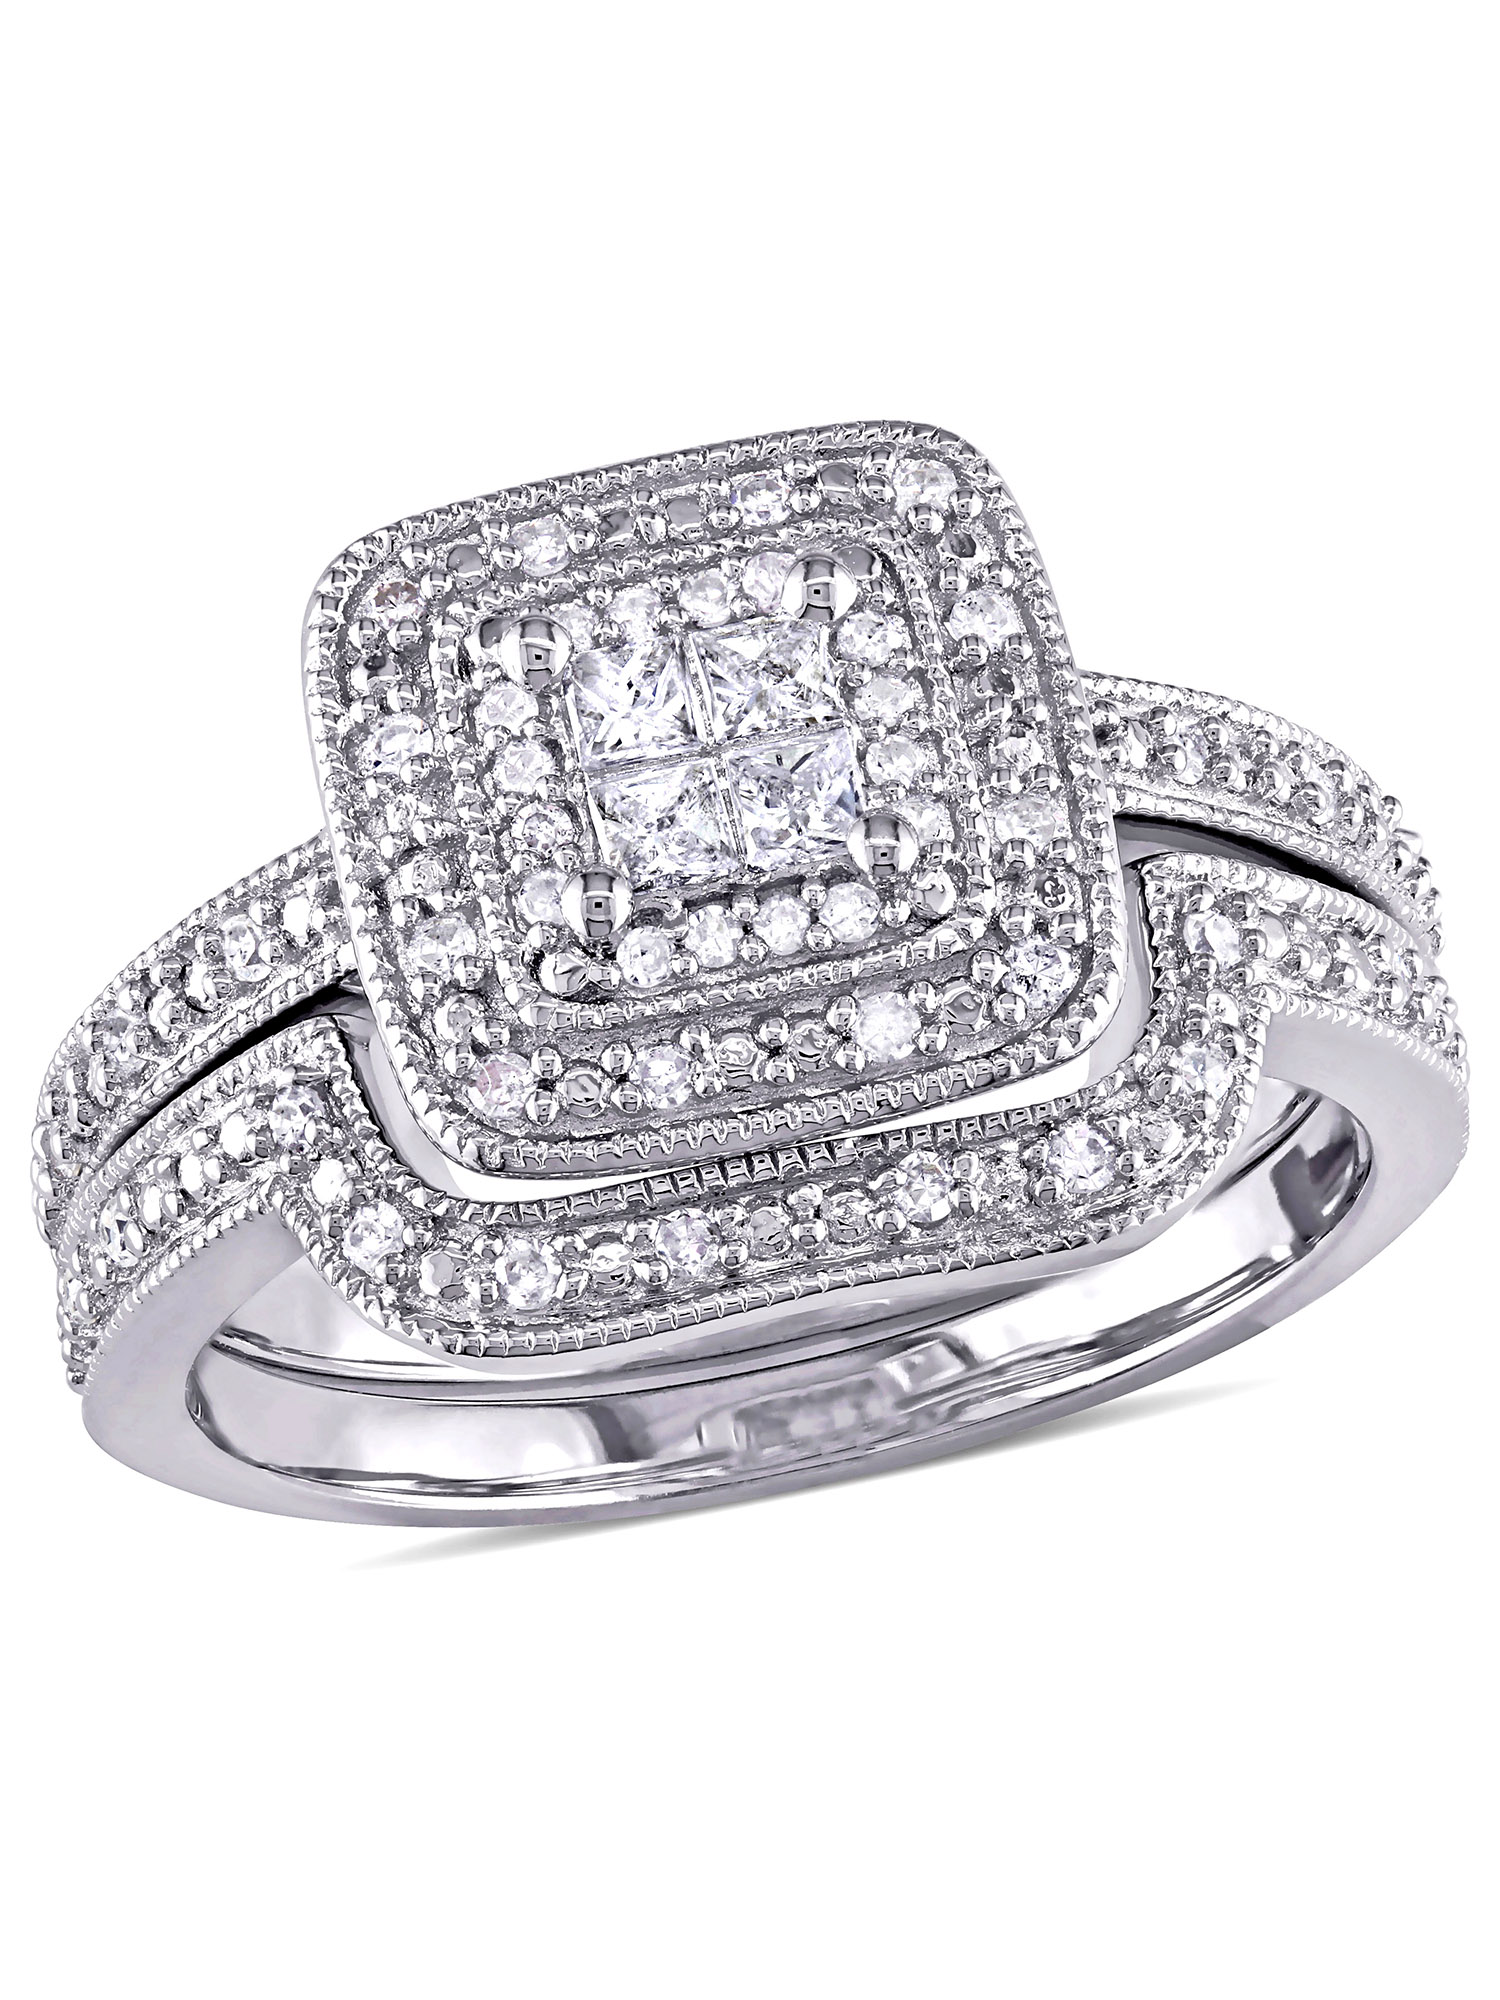 Miabella 1/3 Carat T.W. Princess and Round Cut Diamond Sterling Silver Double Halo Bridal Set